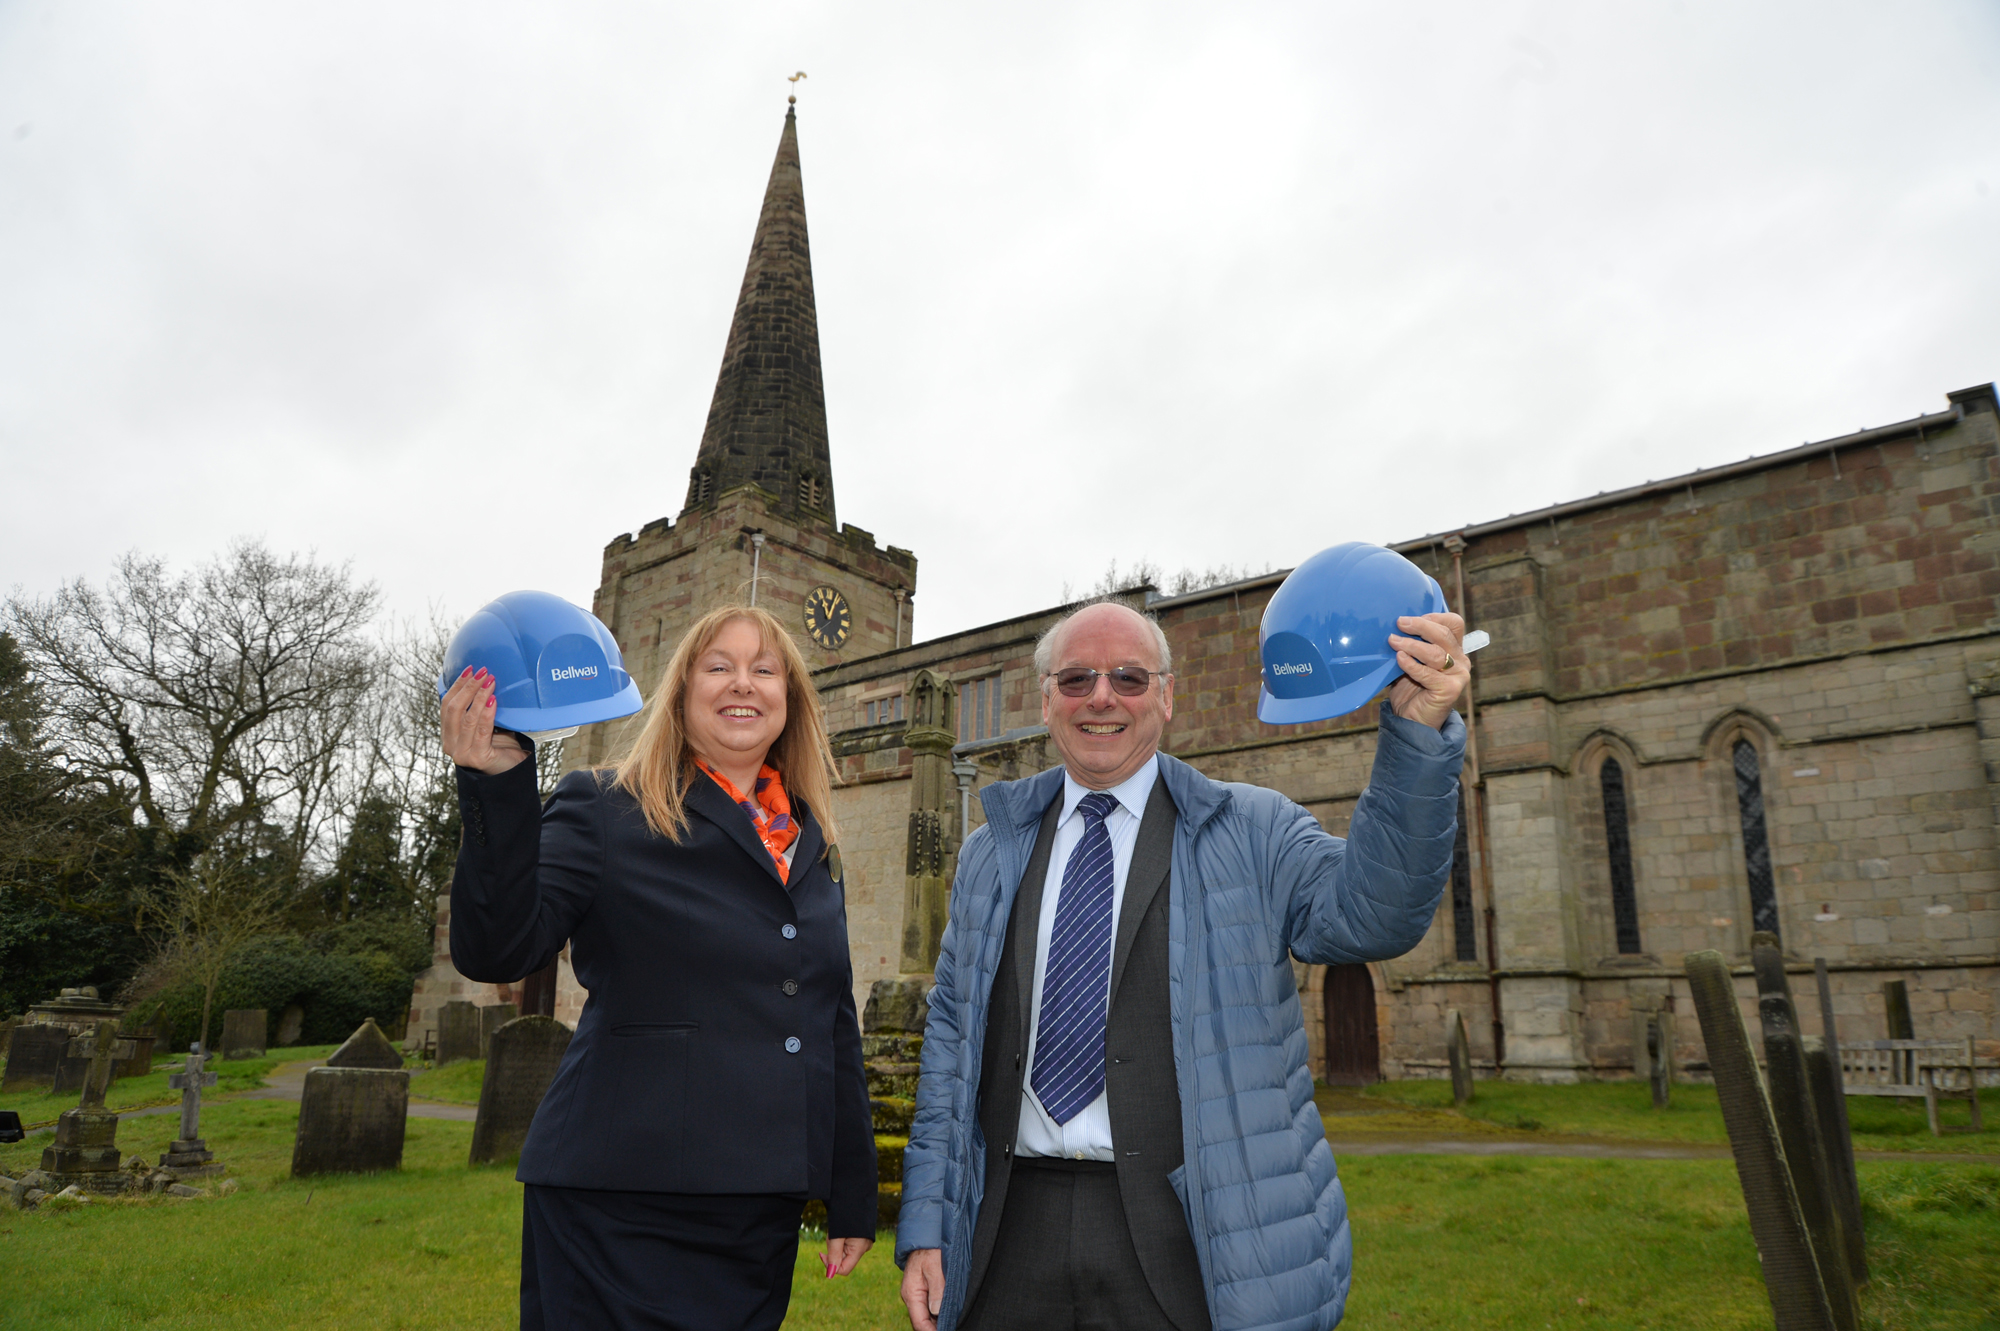 Housebuilder helps raise the roof for Doveridge church appeal